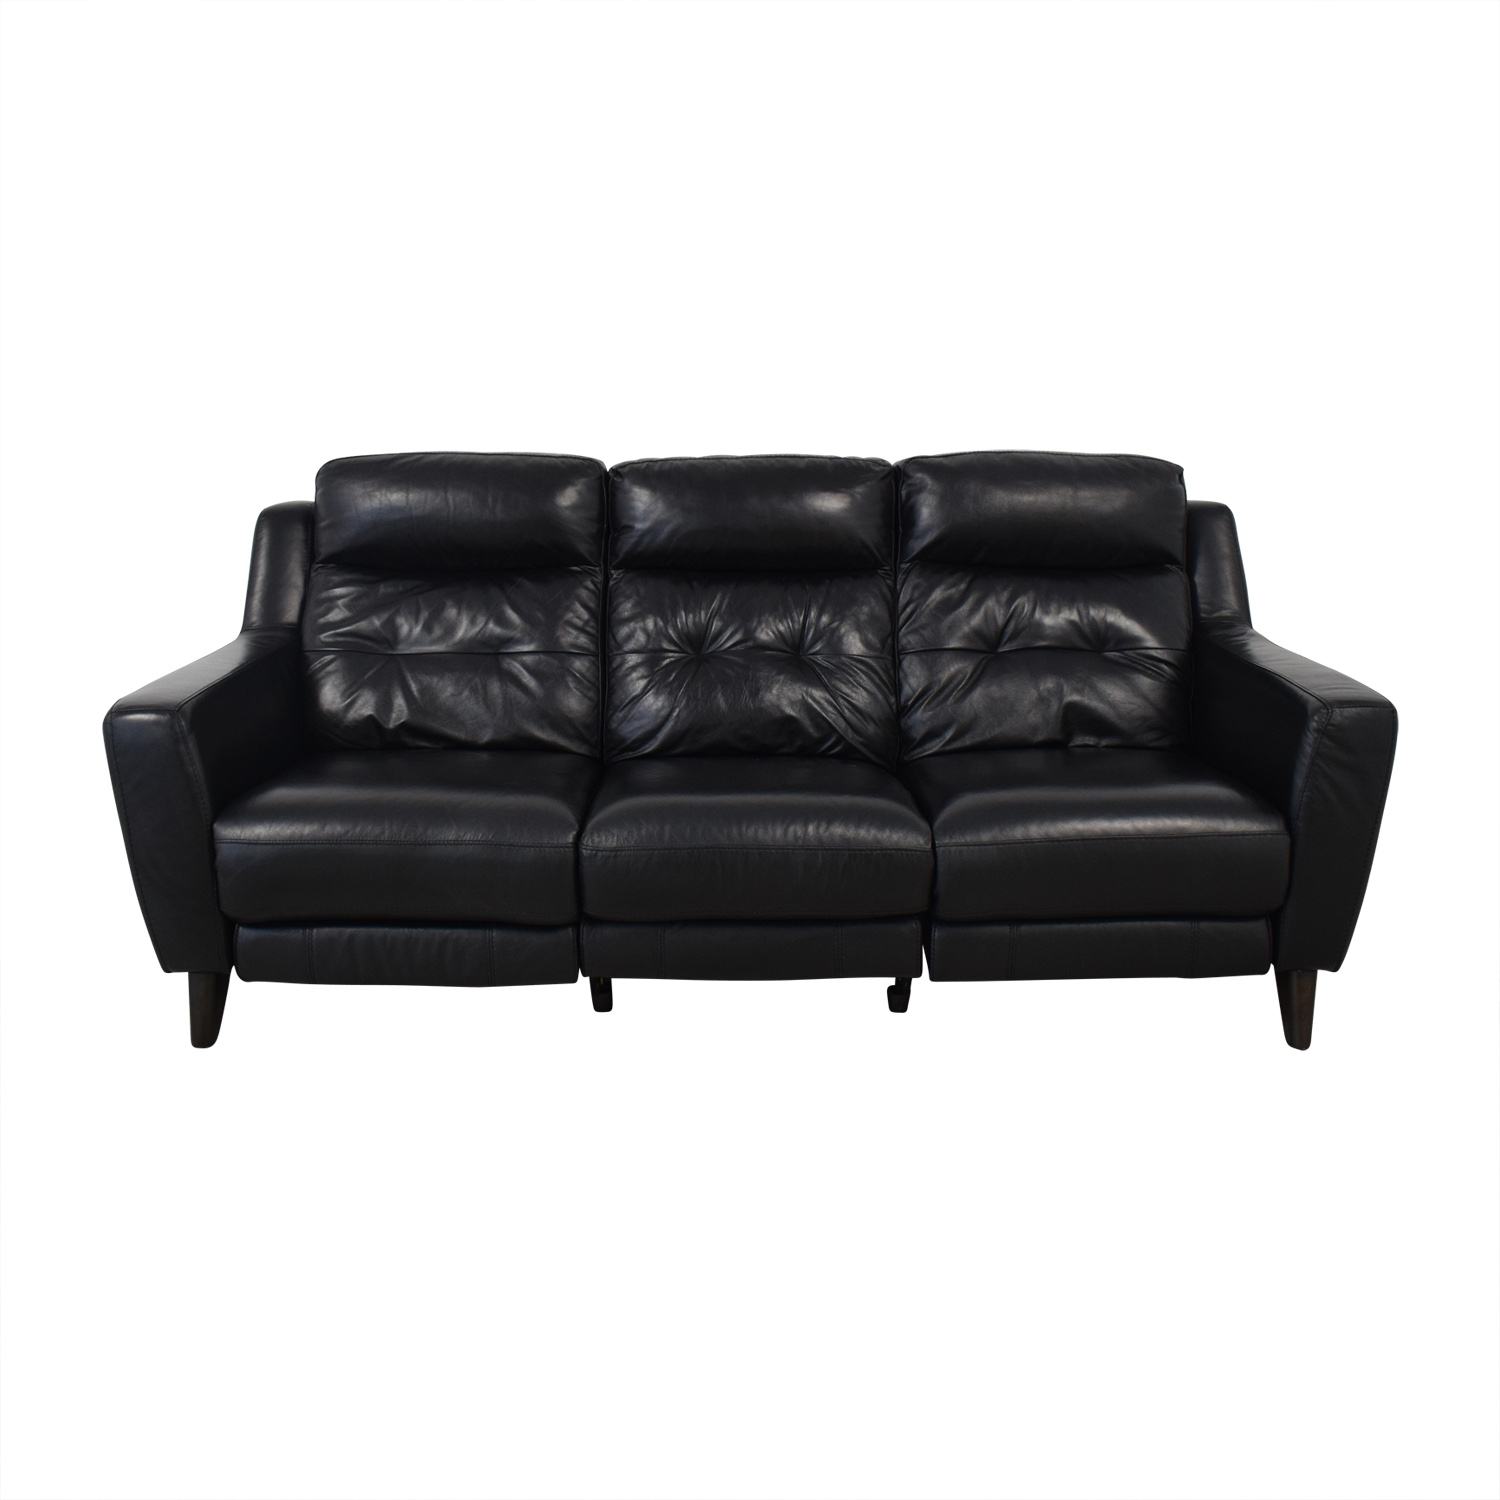 shop Bob's Discount Furniture Black Reclining Sofa Bob's Discount Furniture Classic Sofas